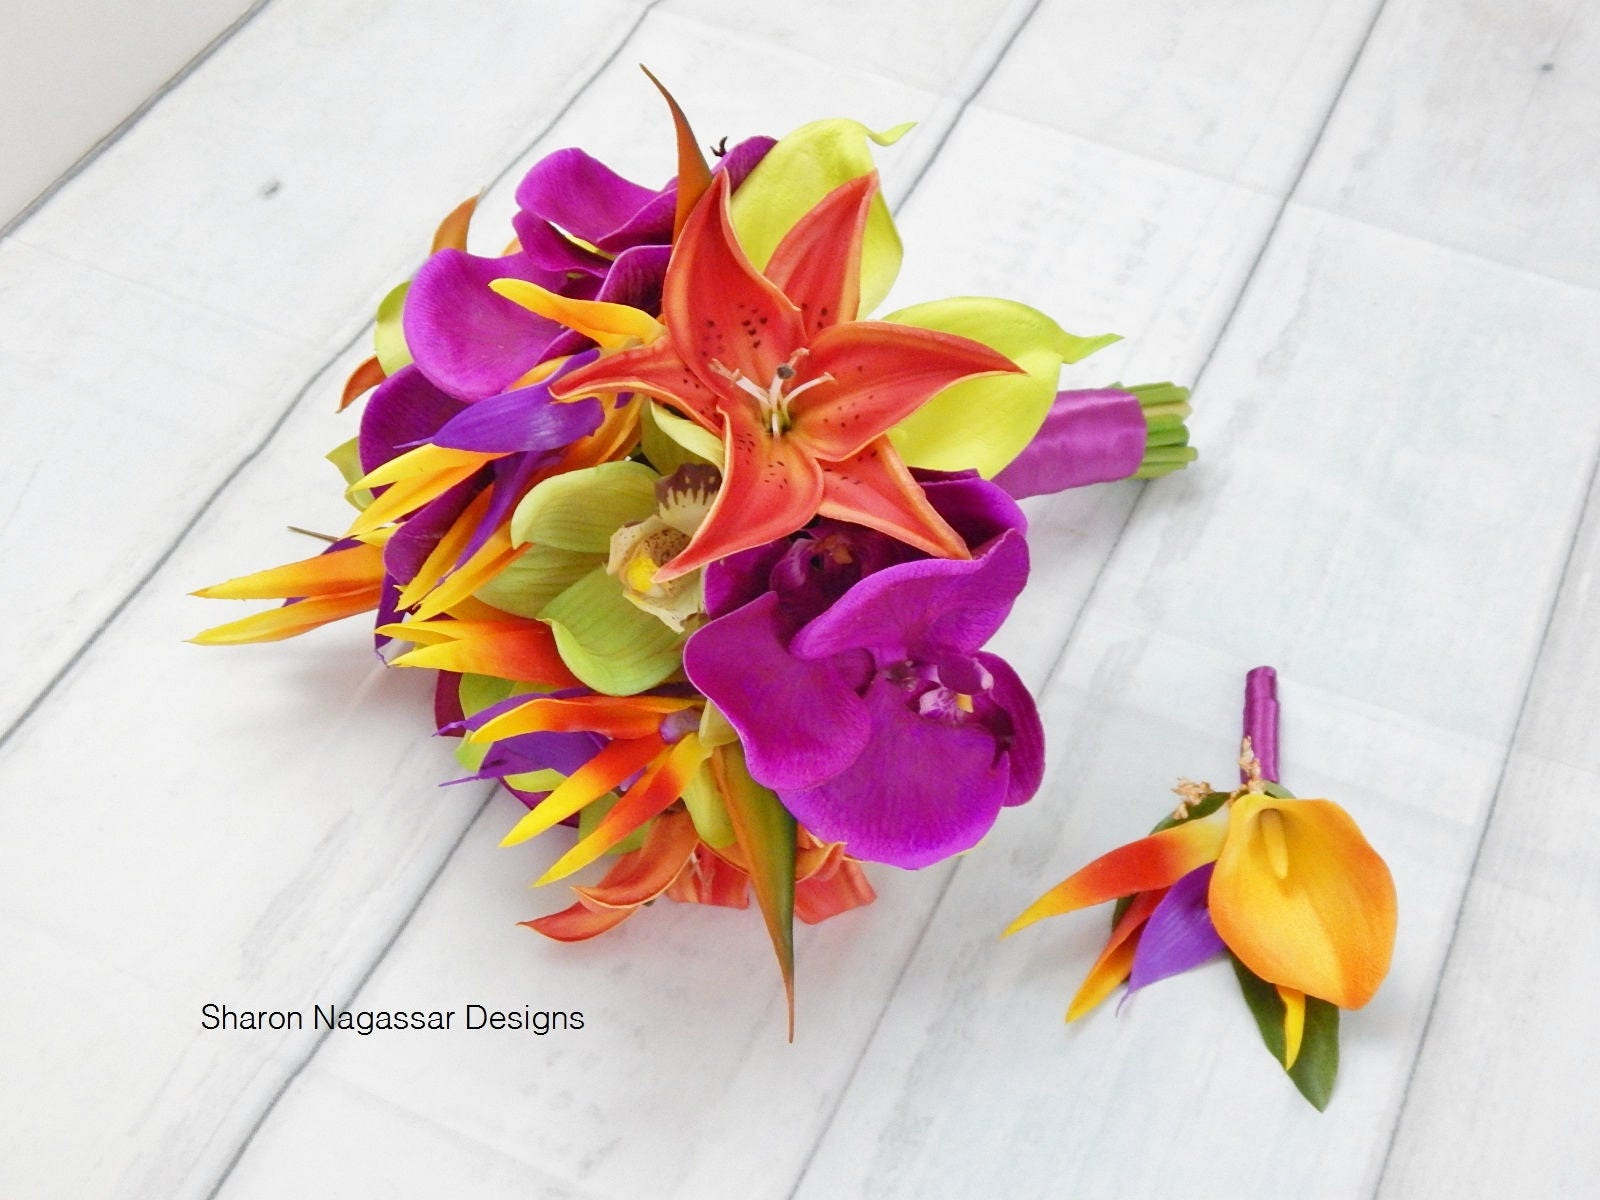 Bird of Paradise, lily/lilies, orchid/orchids, orange, pink/fuchsia ...